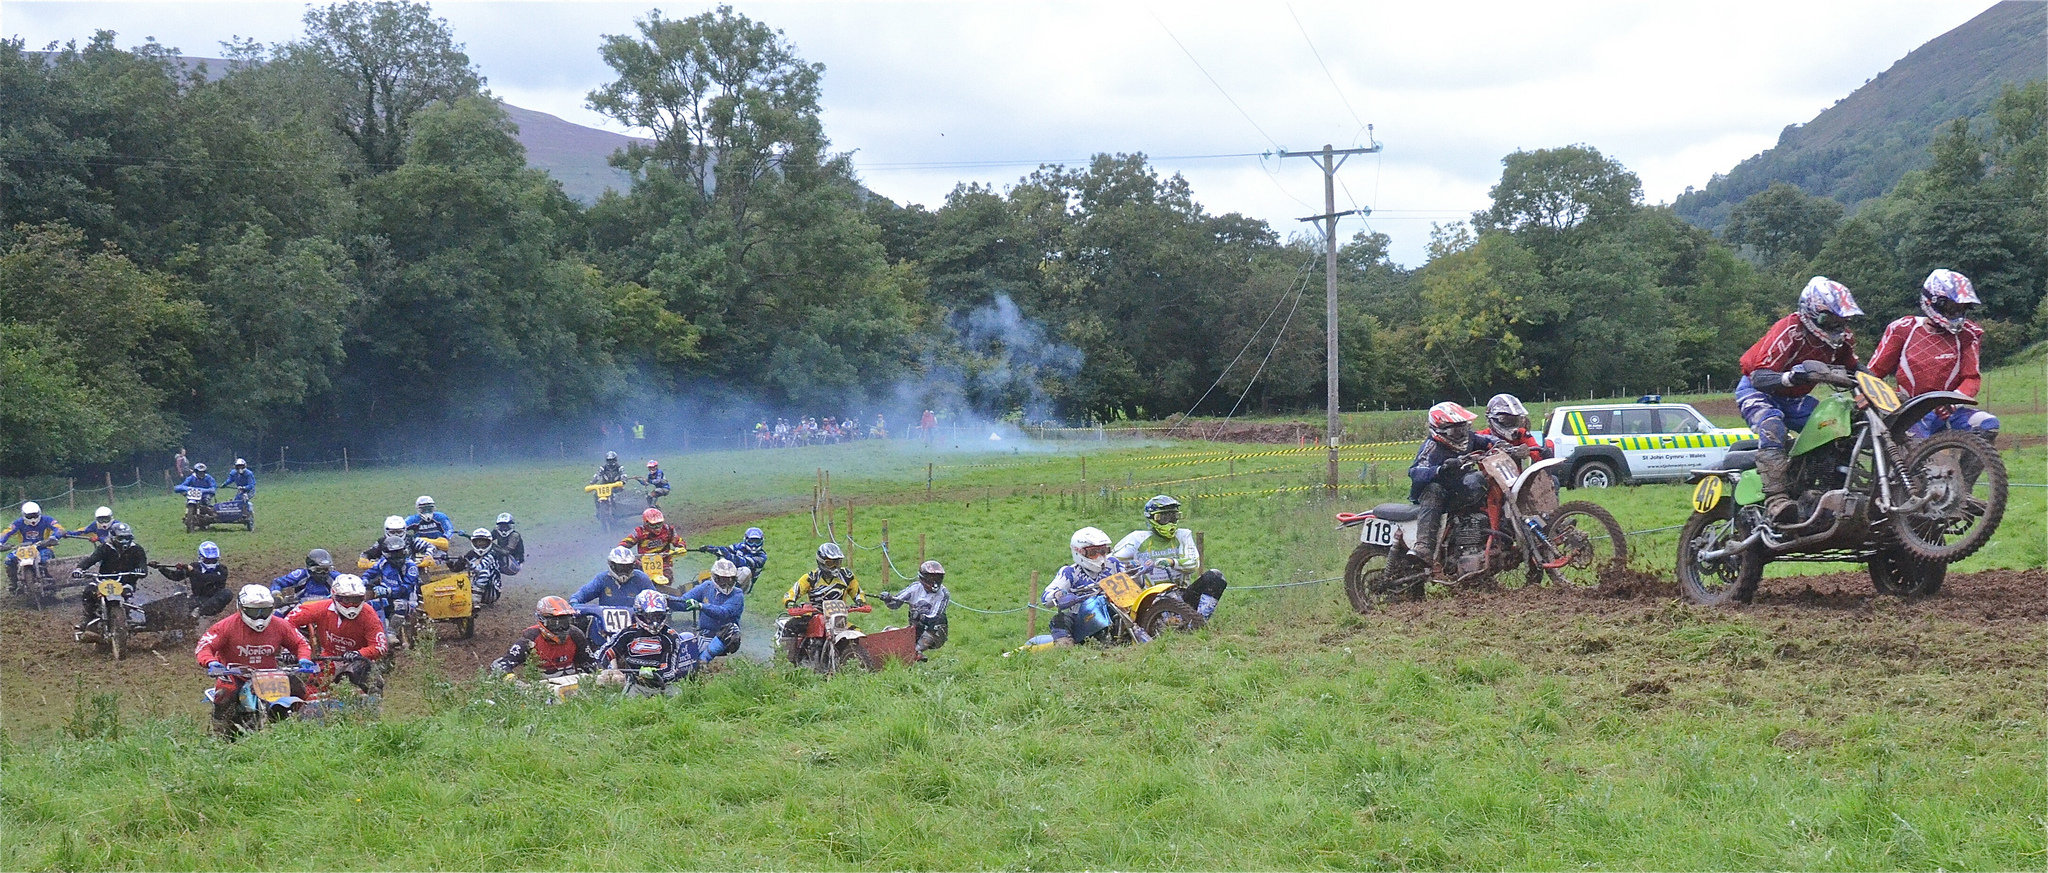 Llanthony Classic Scramble Photos September 2015 classicdirtbikerider.com..38